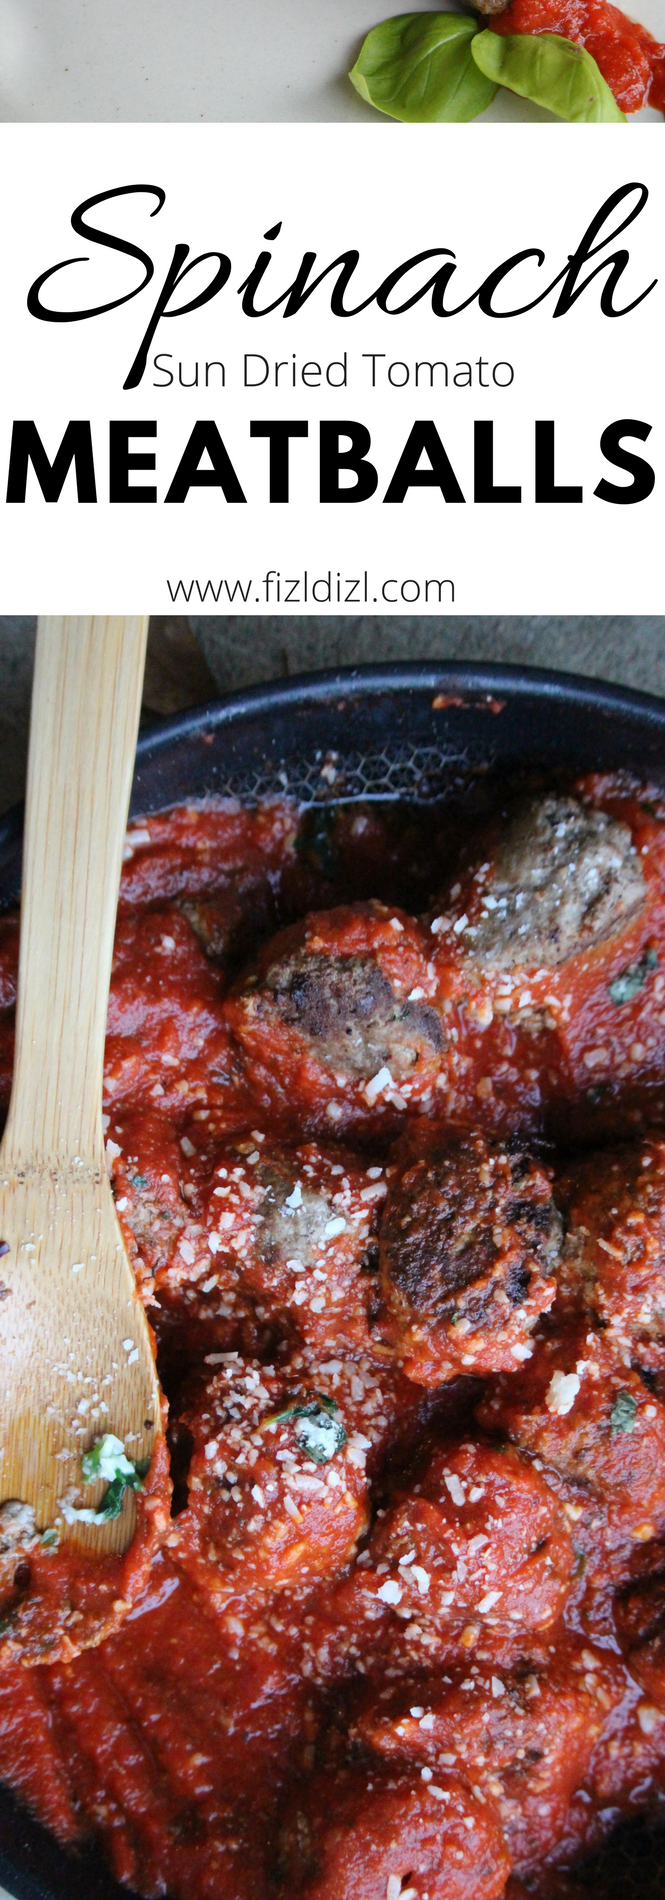 spinach sun dried tomato meatballs